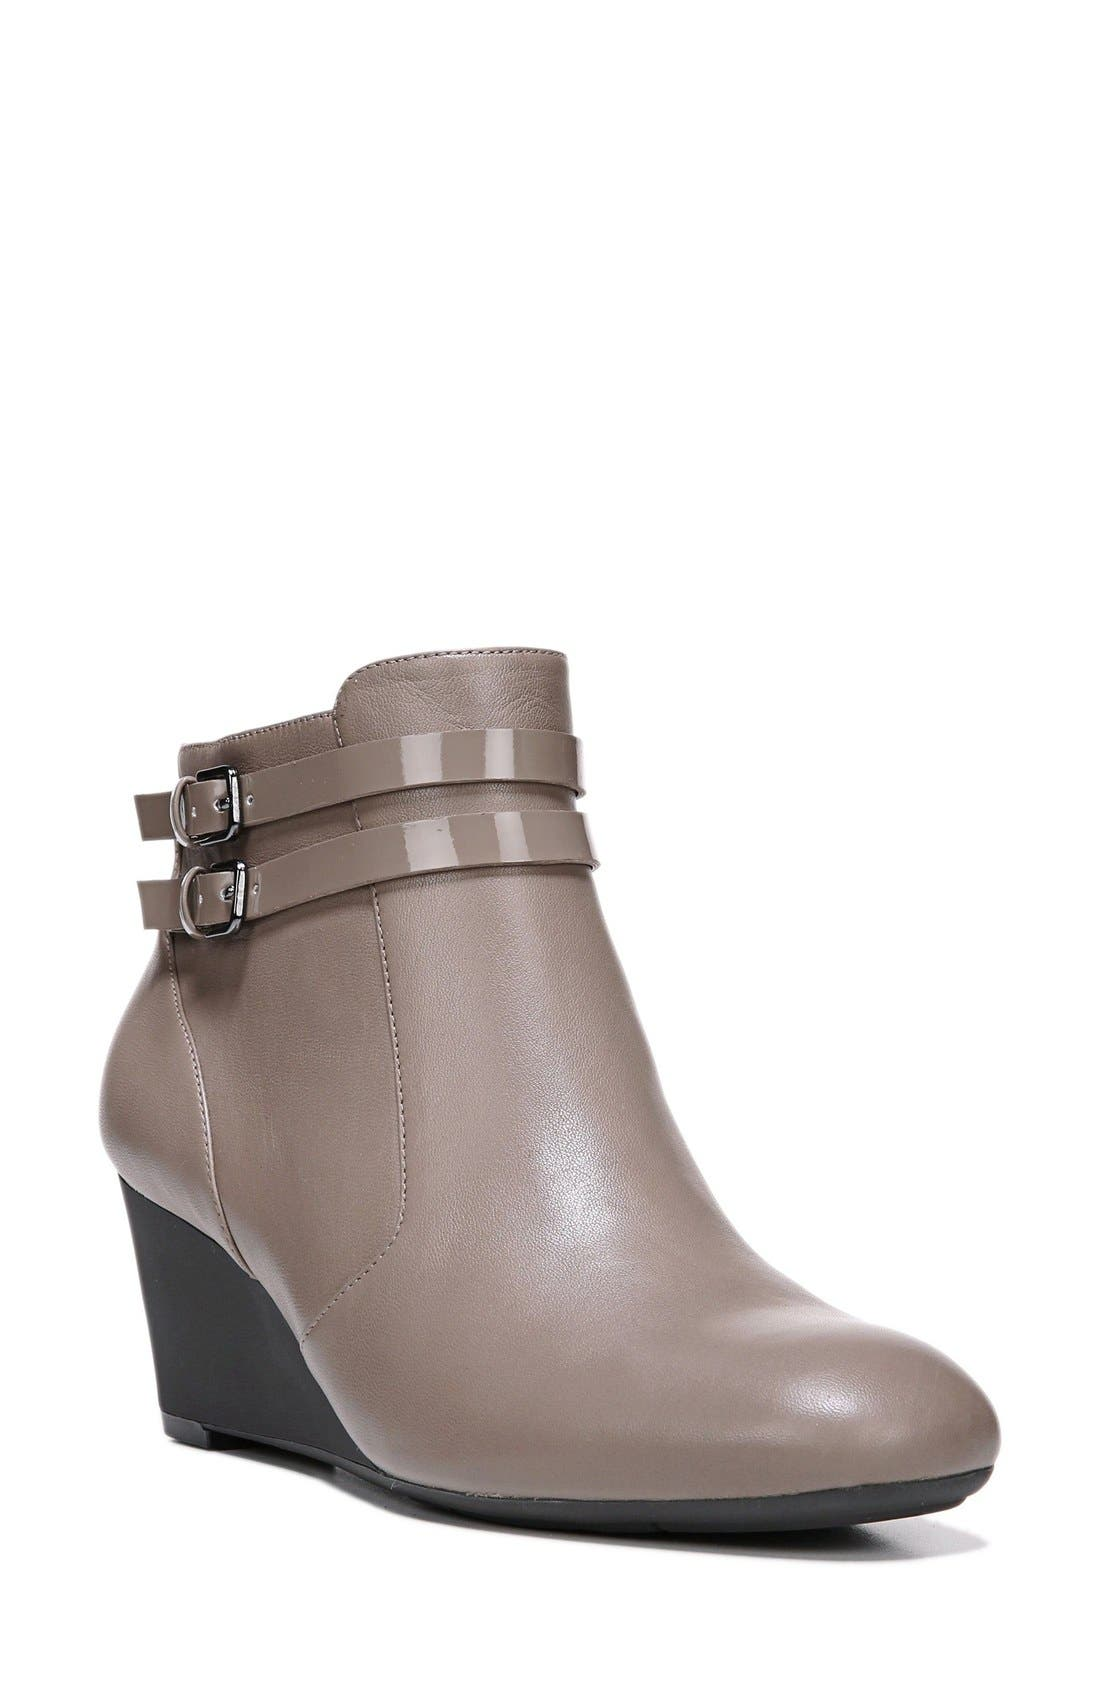 'Nikole' Wedge Bootie,                         Main,                         color, Taupe Leather